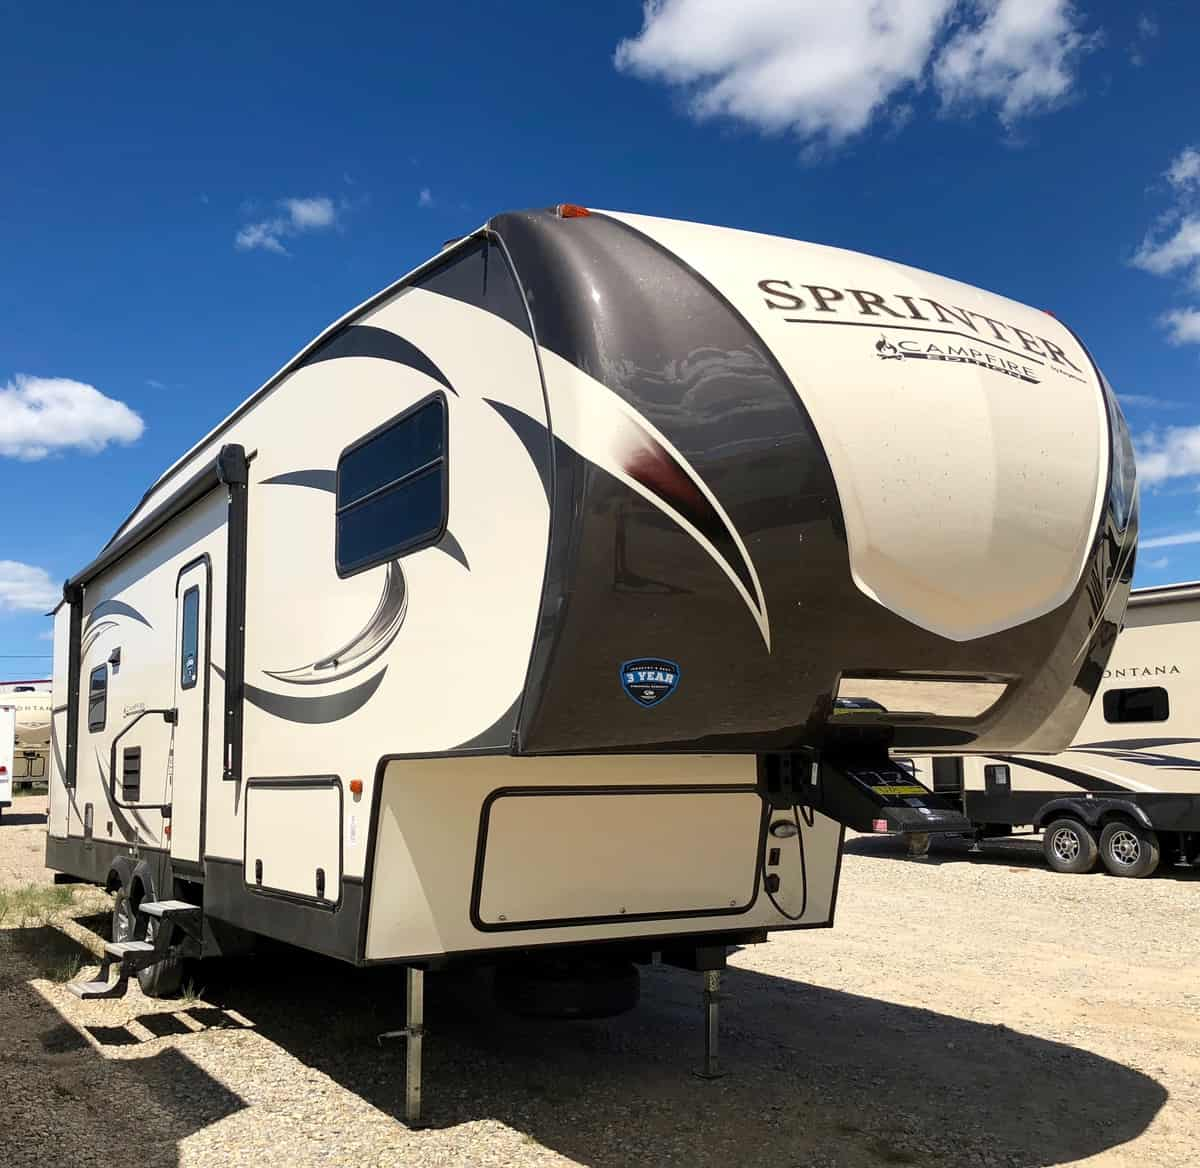 NEW 2019 Keystone SPRINTER 29 FWBH